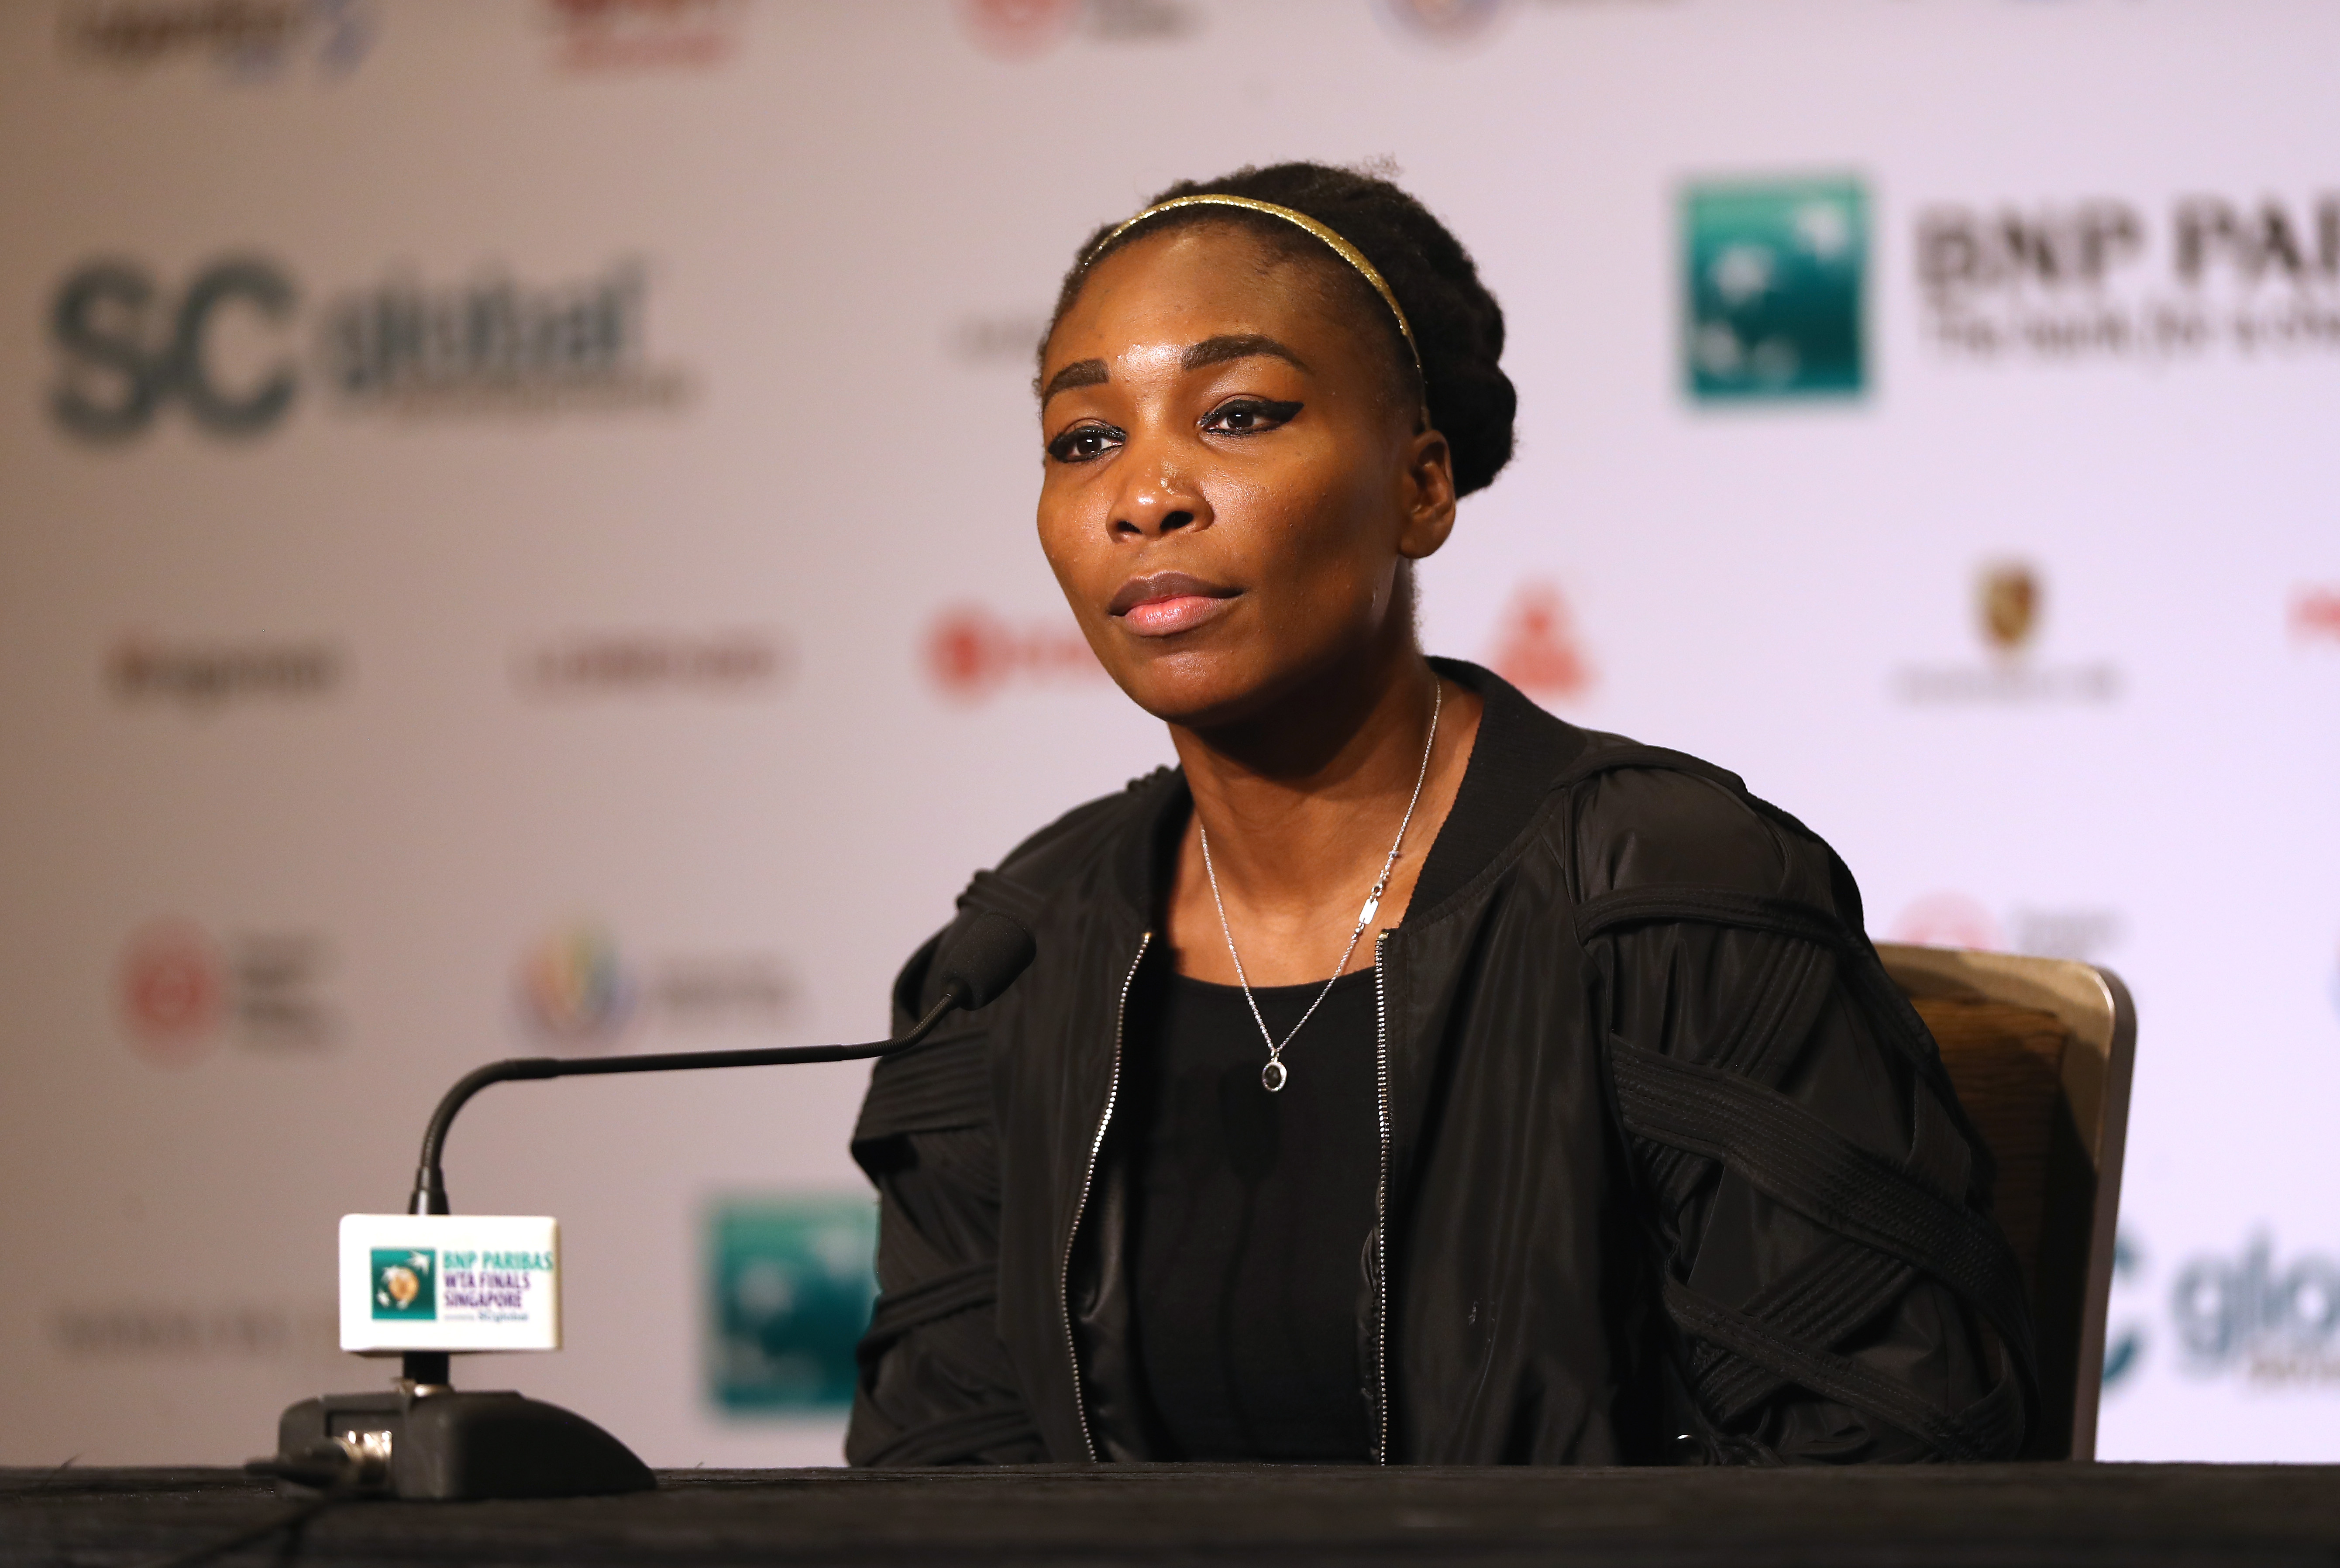 Venus Williams of the United States attends All Access Hour prior to the BNP Paribas WTA Finals Singapore presented by SC Global at Marina Bay Sands Hotel on October 21, 2017 in Singapore.